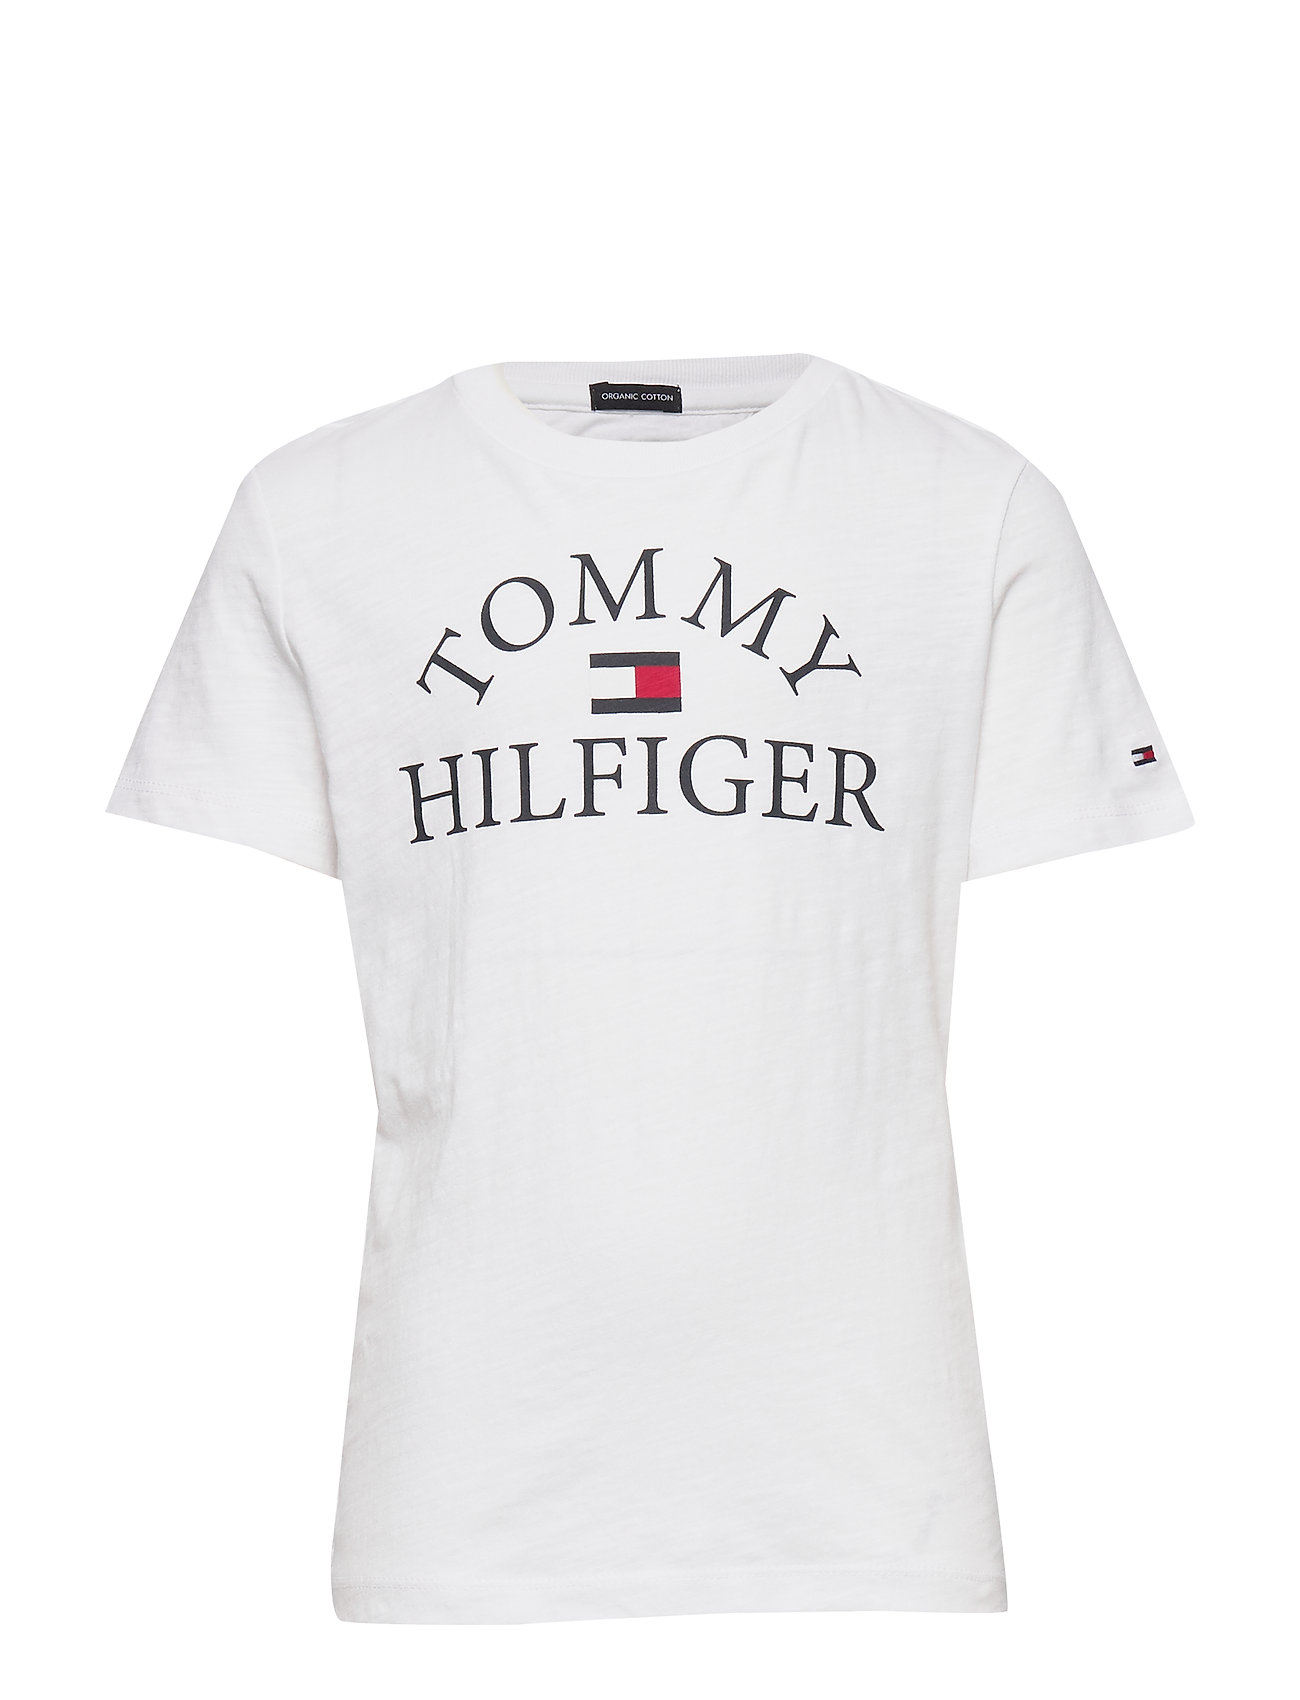 Tommy Hilfiger ESSENTIAL LOGO TEE S/S - WHITE 658-170